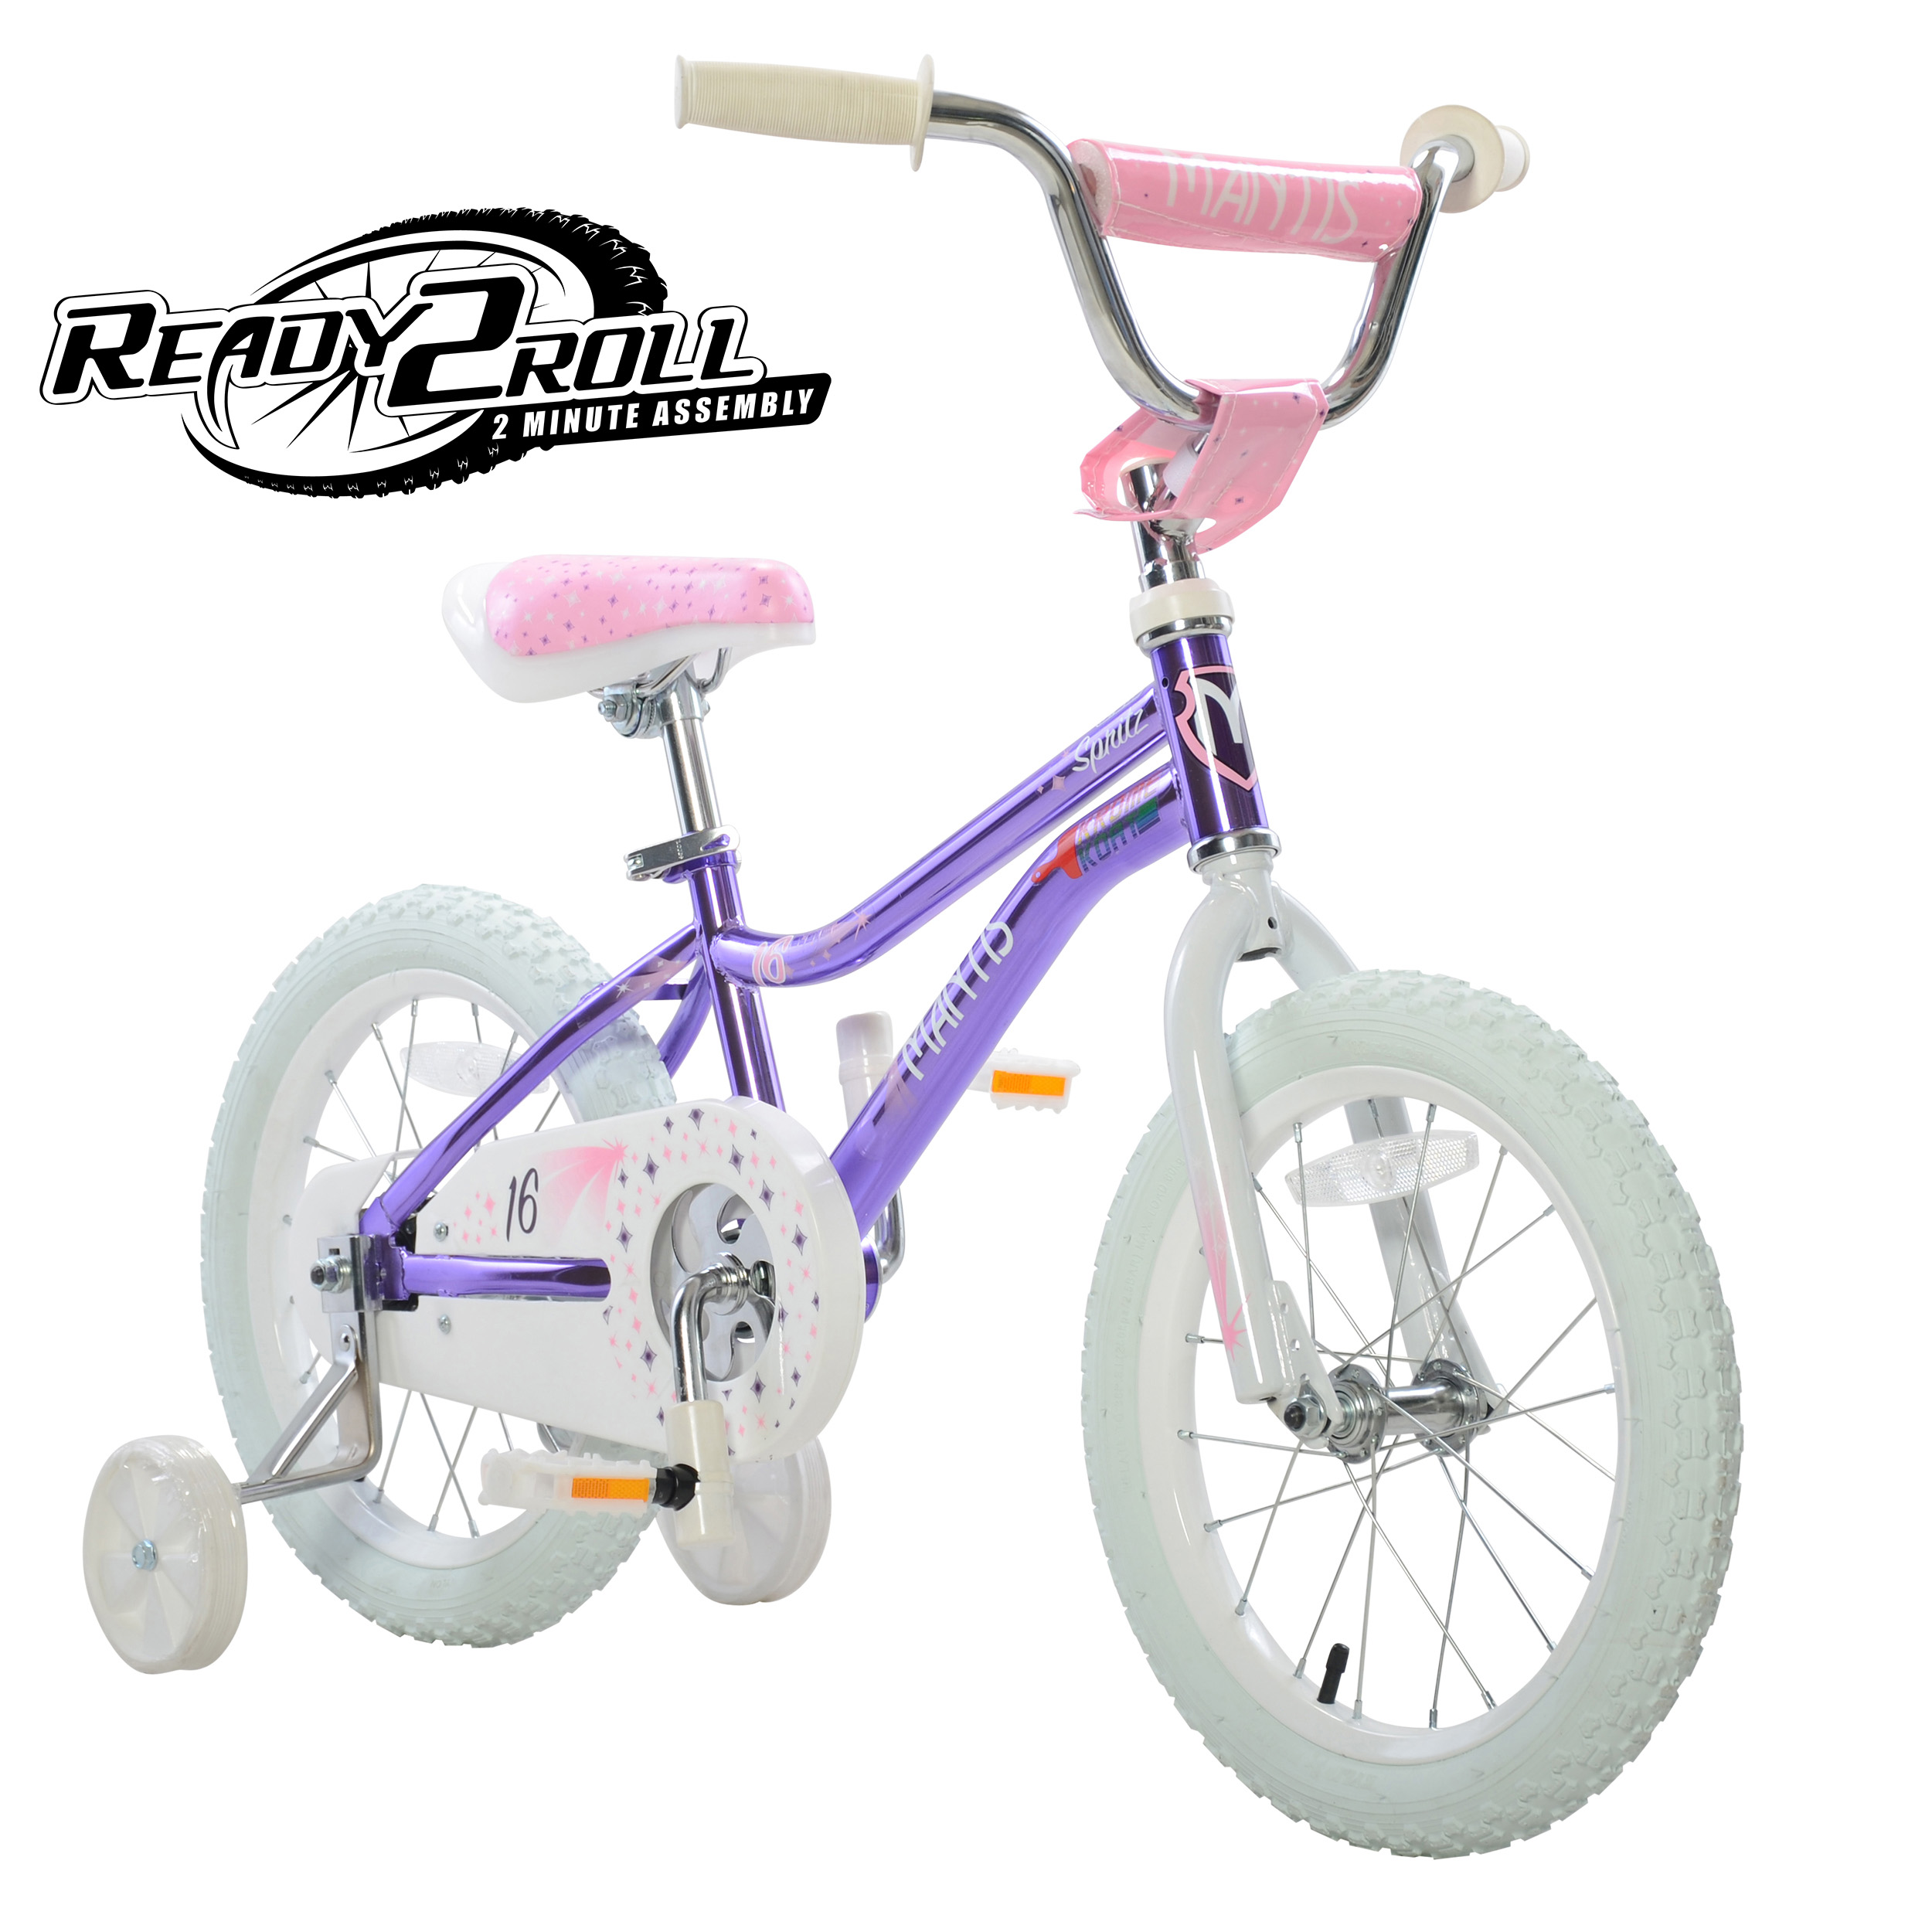 Spritz Violet Ready2Roll 16 inch Kids Bicycle